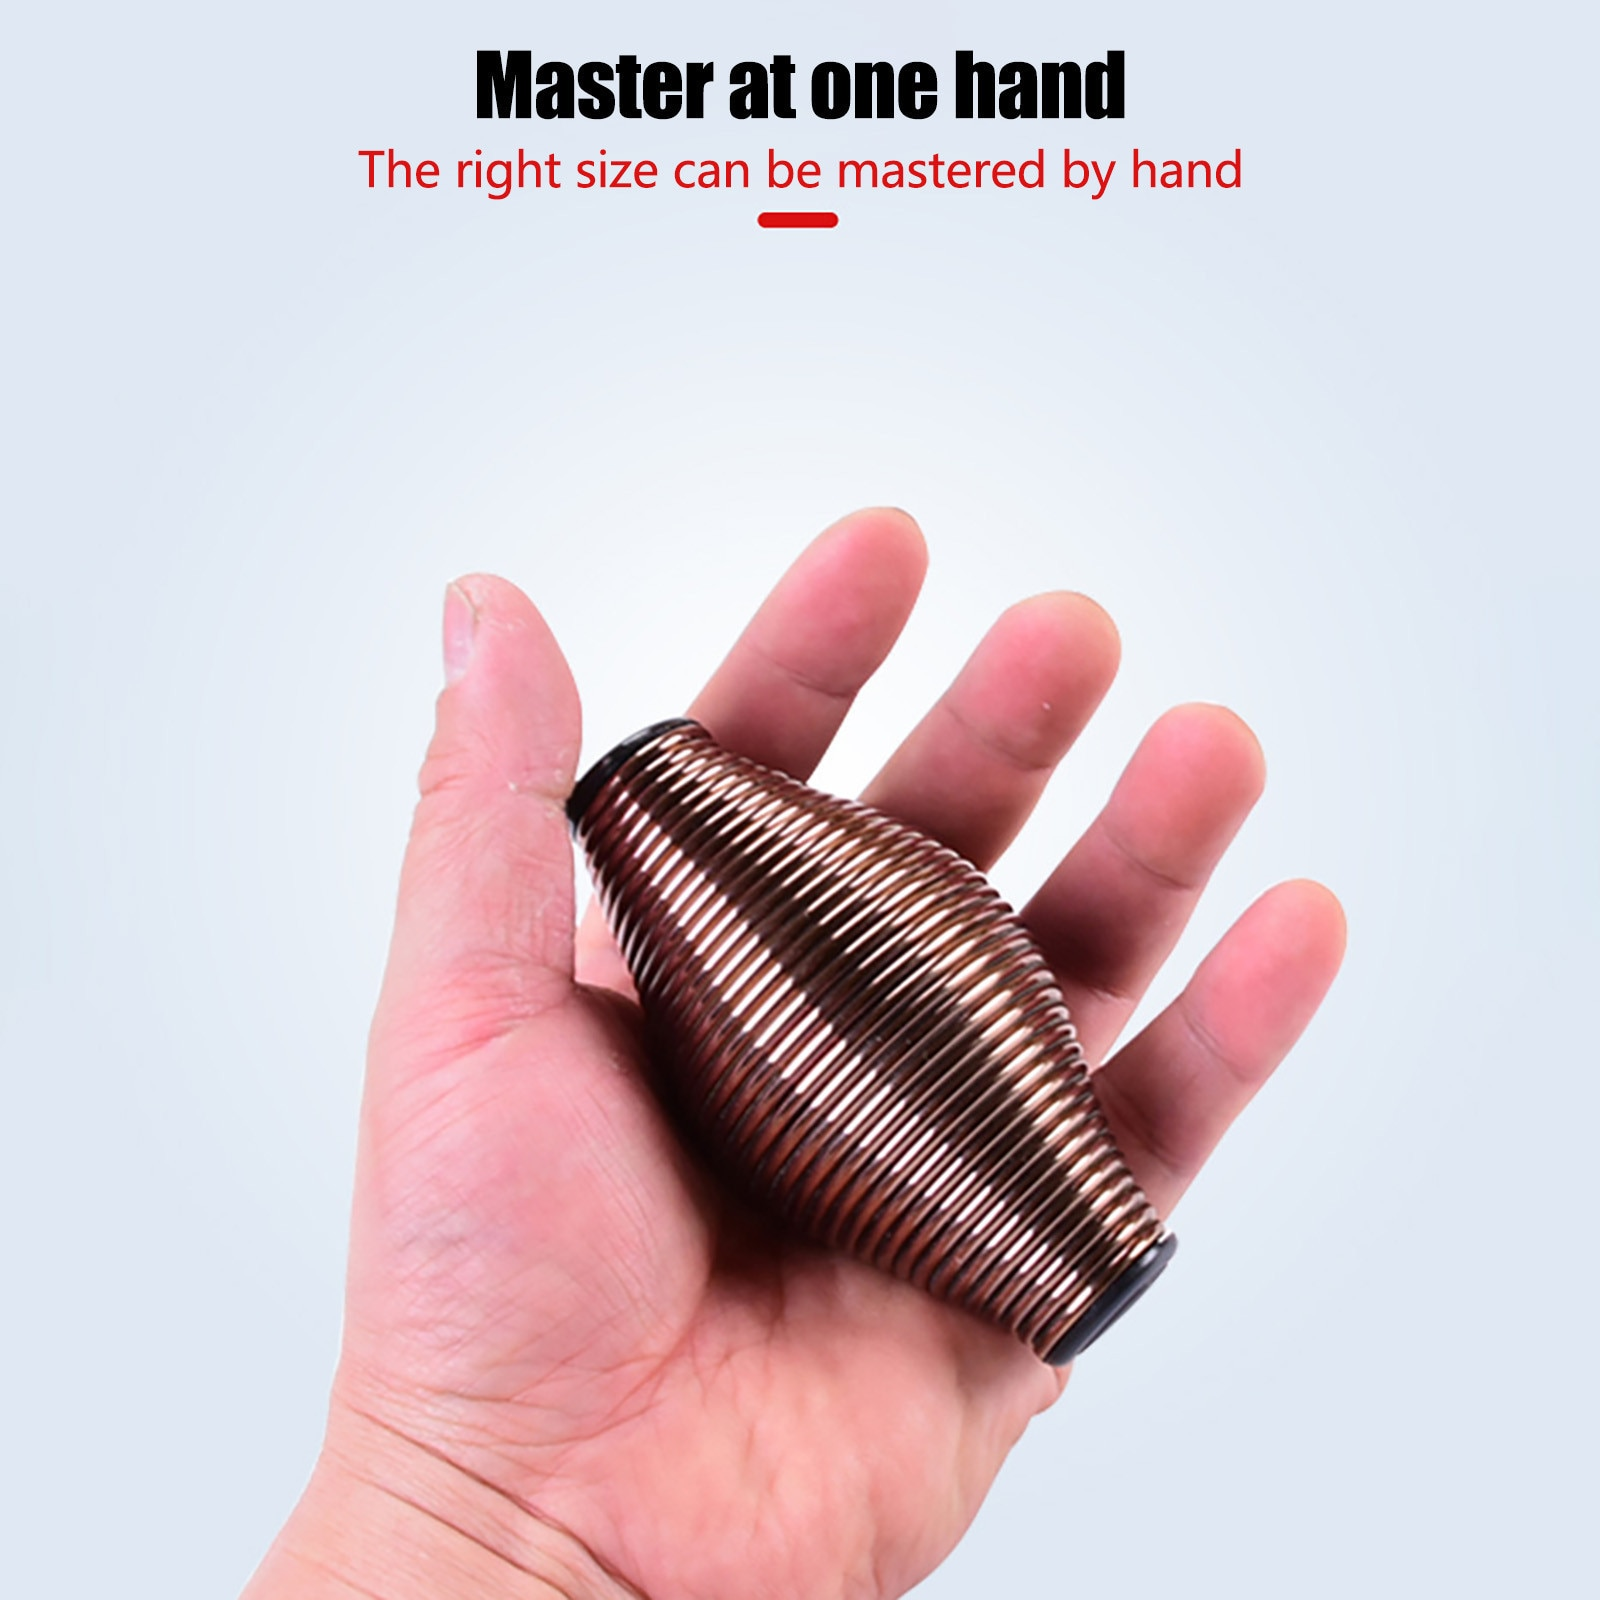 Decompression toy spring grip ball metal grip device adult decompression toy pinch music to relieve stress 2PC антистресс 40* enlarge